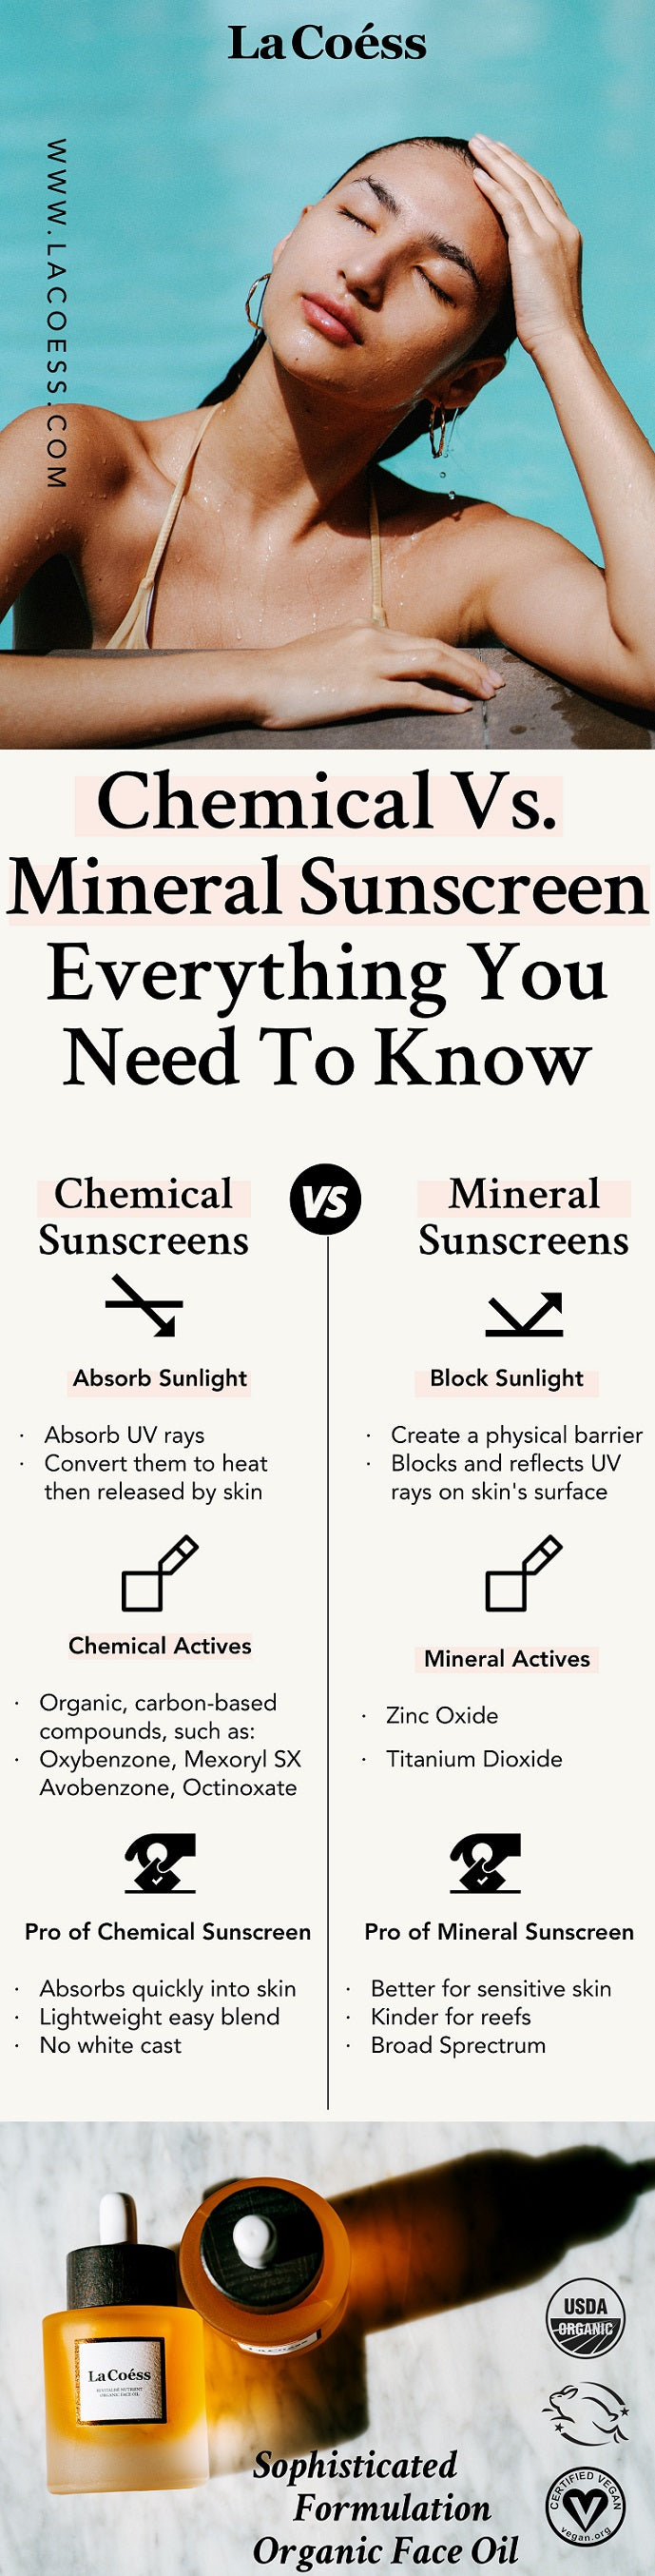 Chemical vs. Mineral Sunscreen: Everything You Need To Know